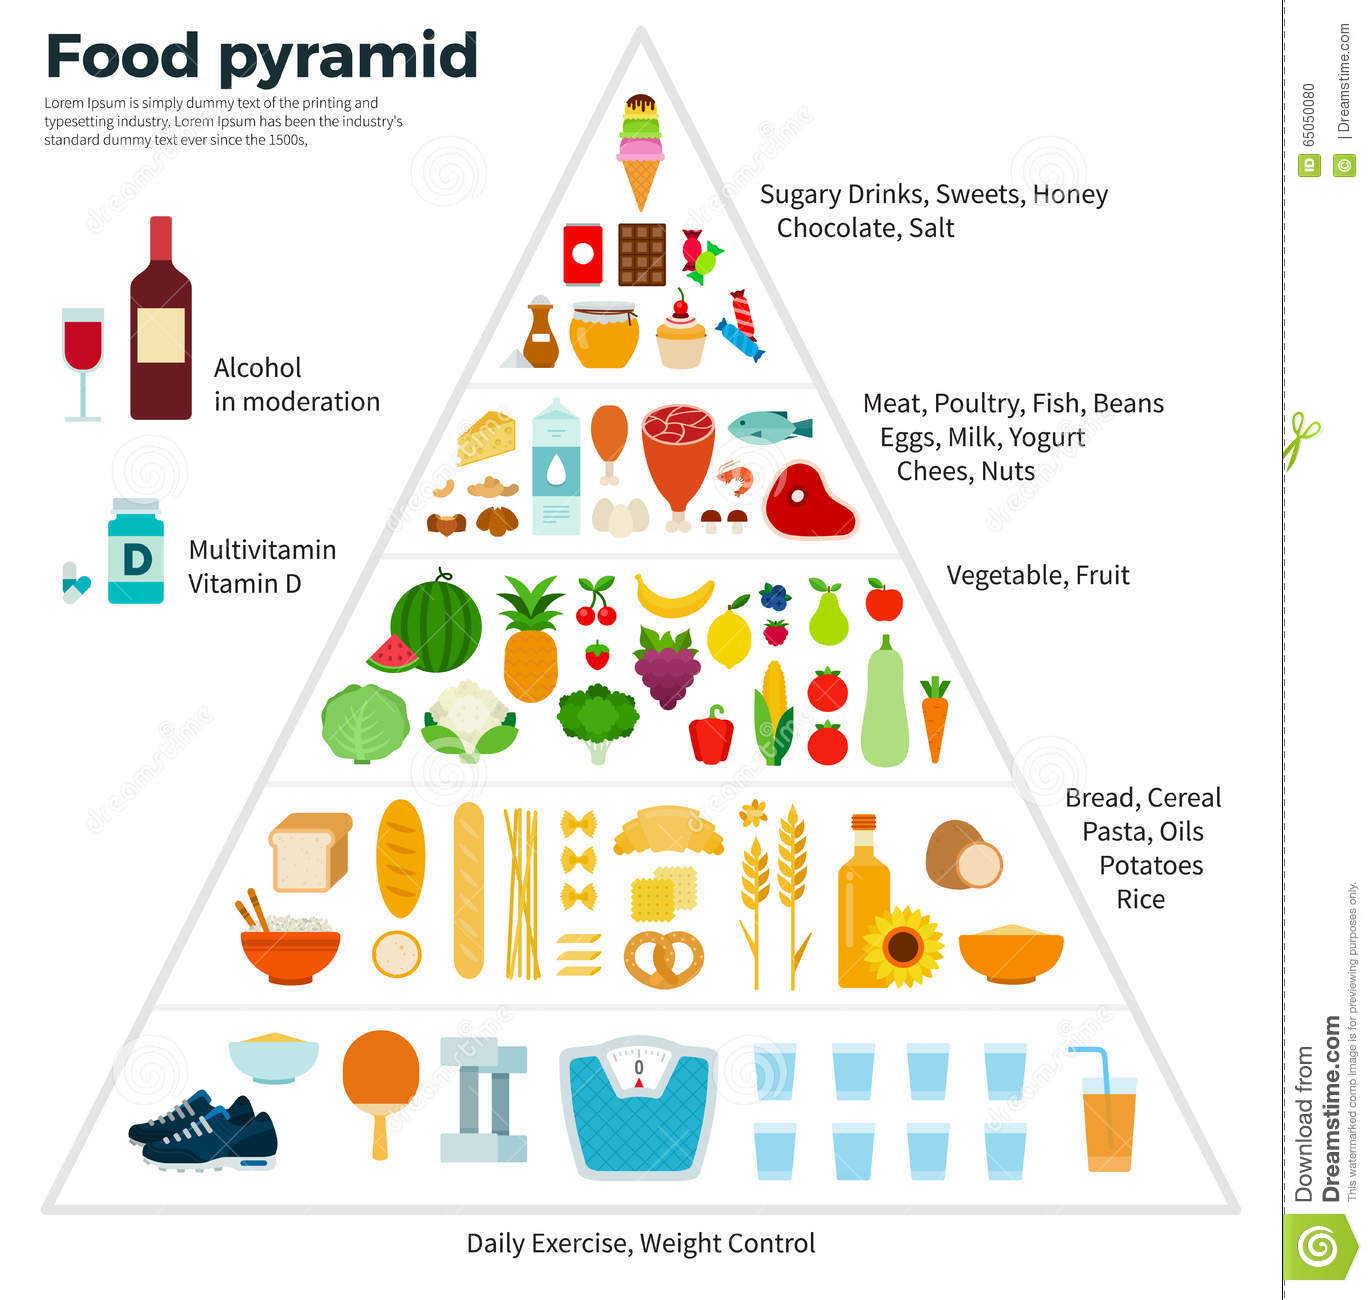 Food Guide Pyramid Healthy Eating Stock Vector - Image: 65050080